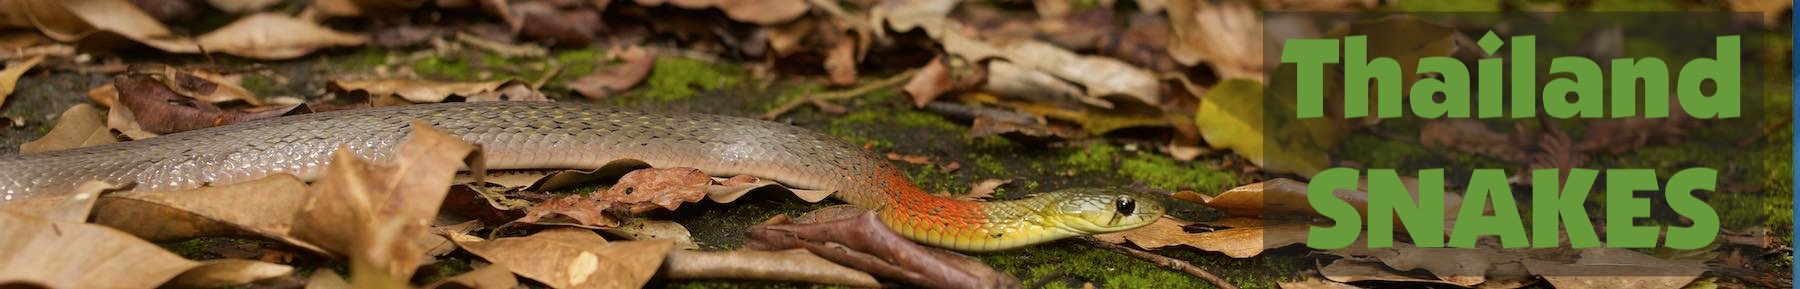 Thailand Snakes – Venomous Snakes, Facts, ID, Photos, Videos